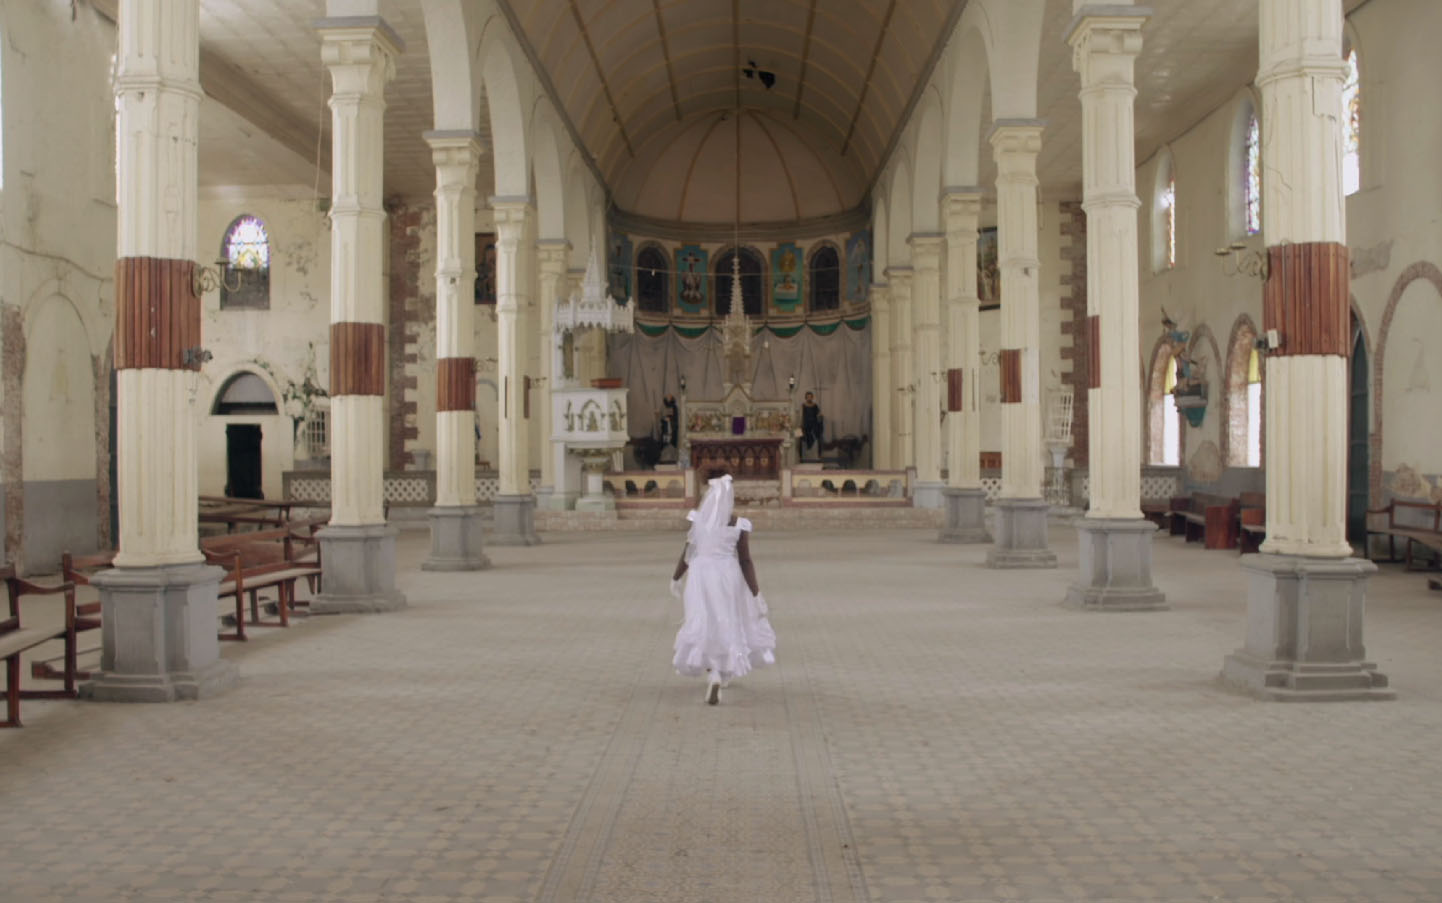 image from DOUVAN JOU KA LEVE  courtesy of Ayizan Productions, SaNoSi Productions , and Fanal Productions